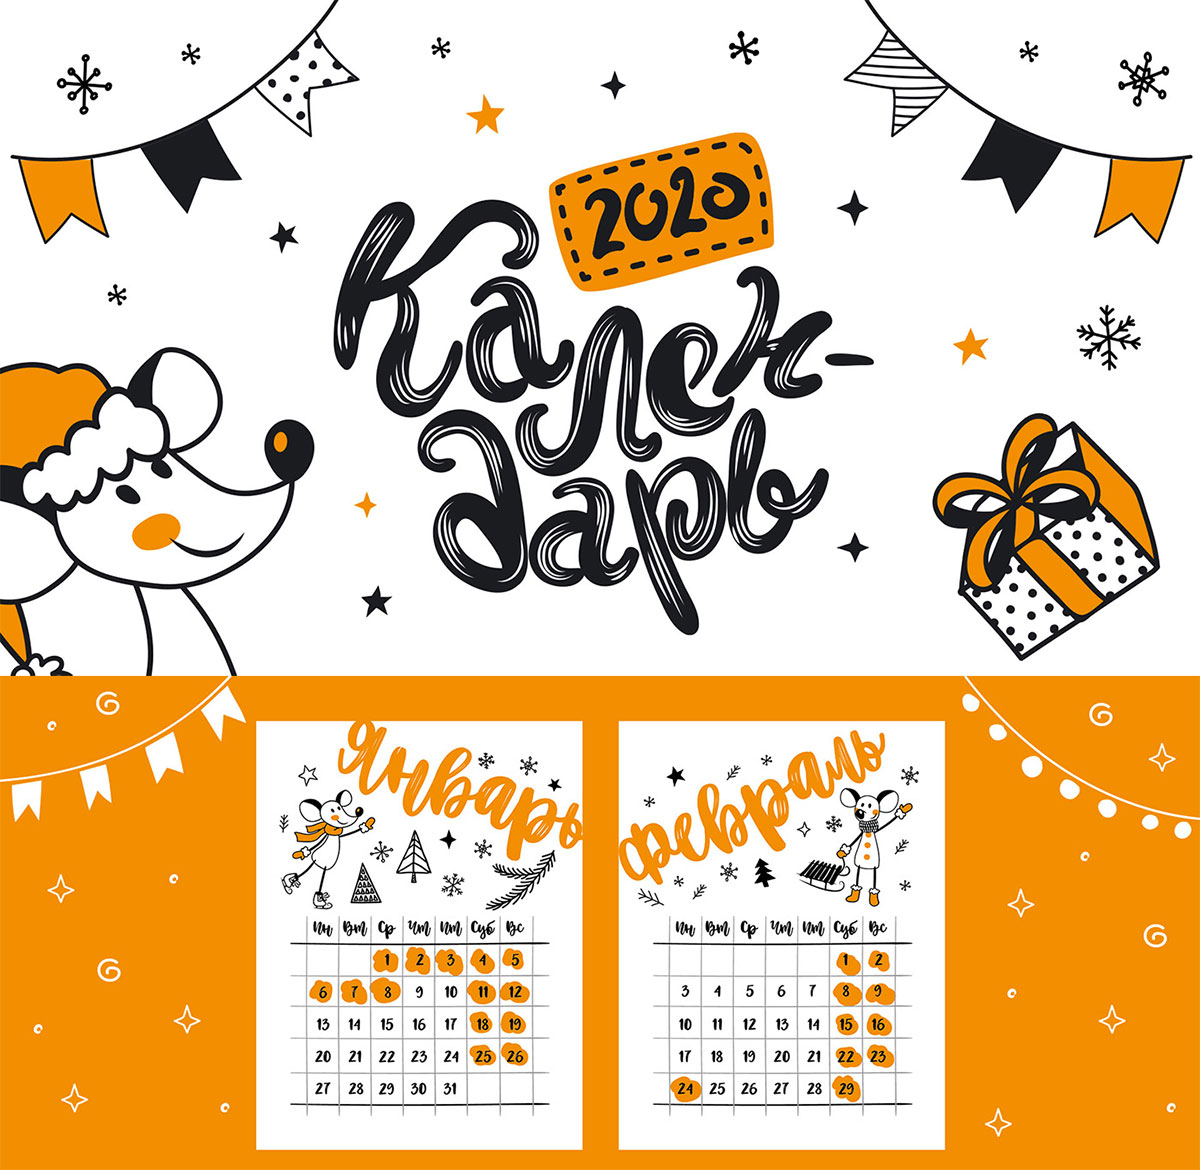 25 Best New Year 2020 Wall & Desk Calendar Designs For